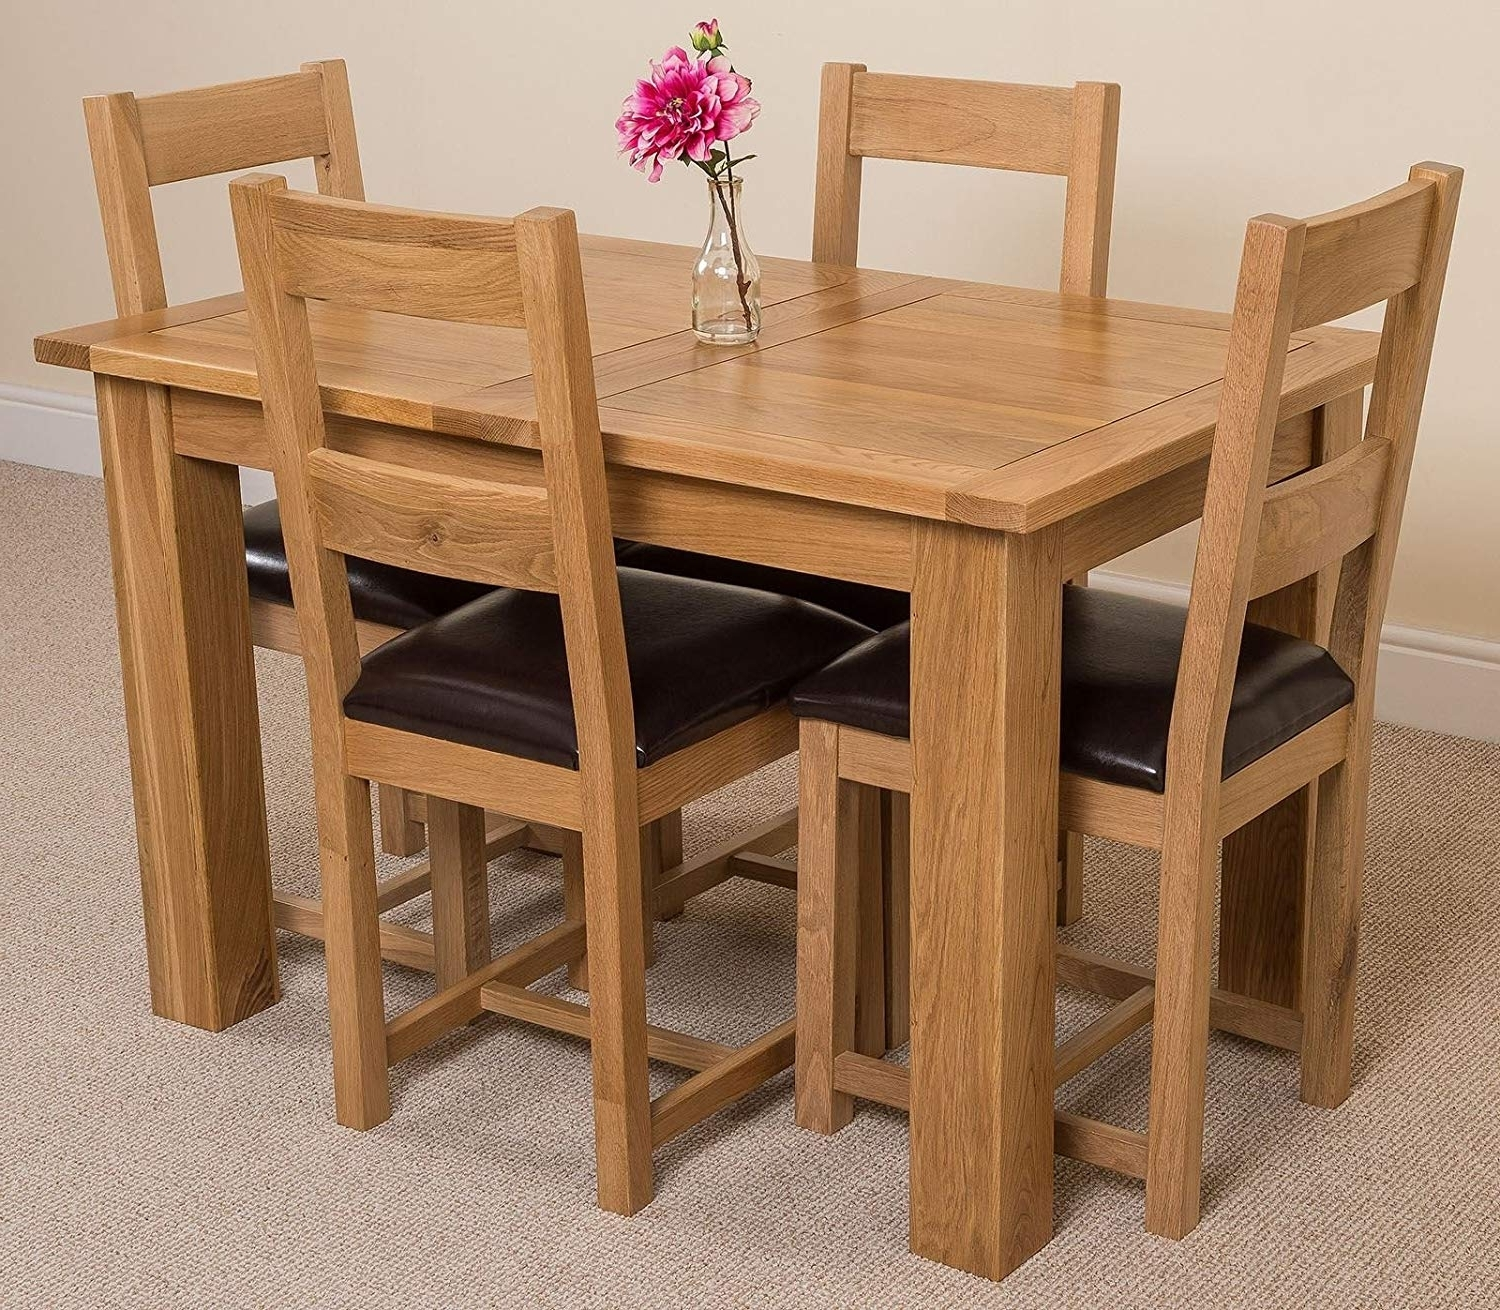 Trendy Small Extending Dining Tables And Chairs Regarding Hampton Solid Oak (120 160 Cm) Extending Dining Table & 4 Lincoln (View 9 of 25)